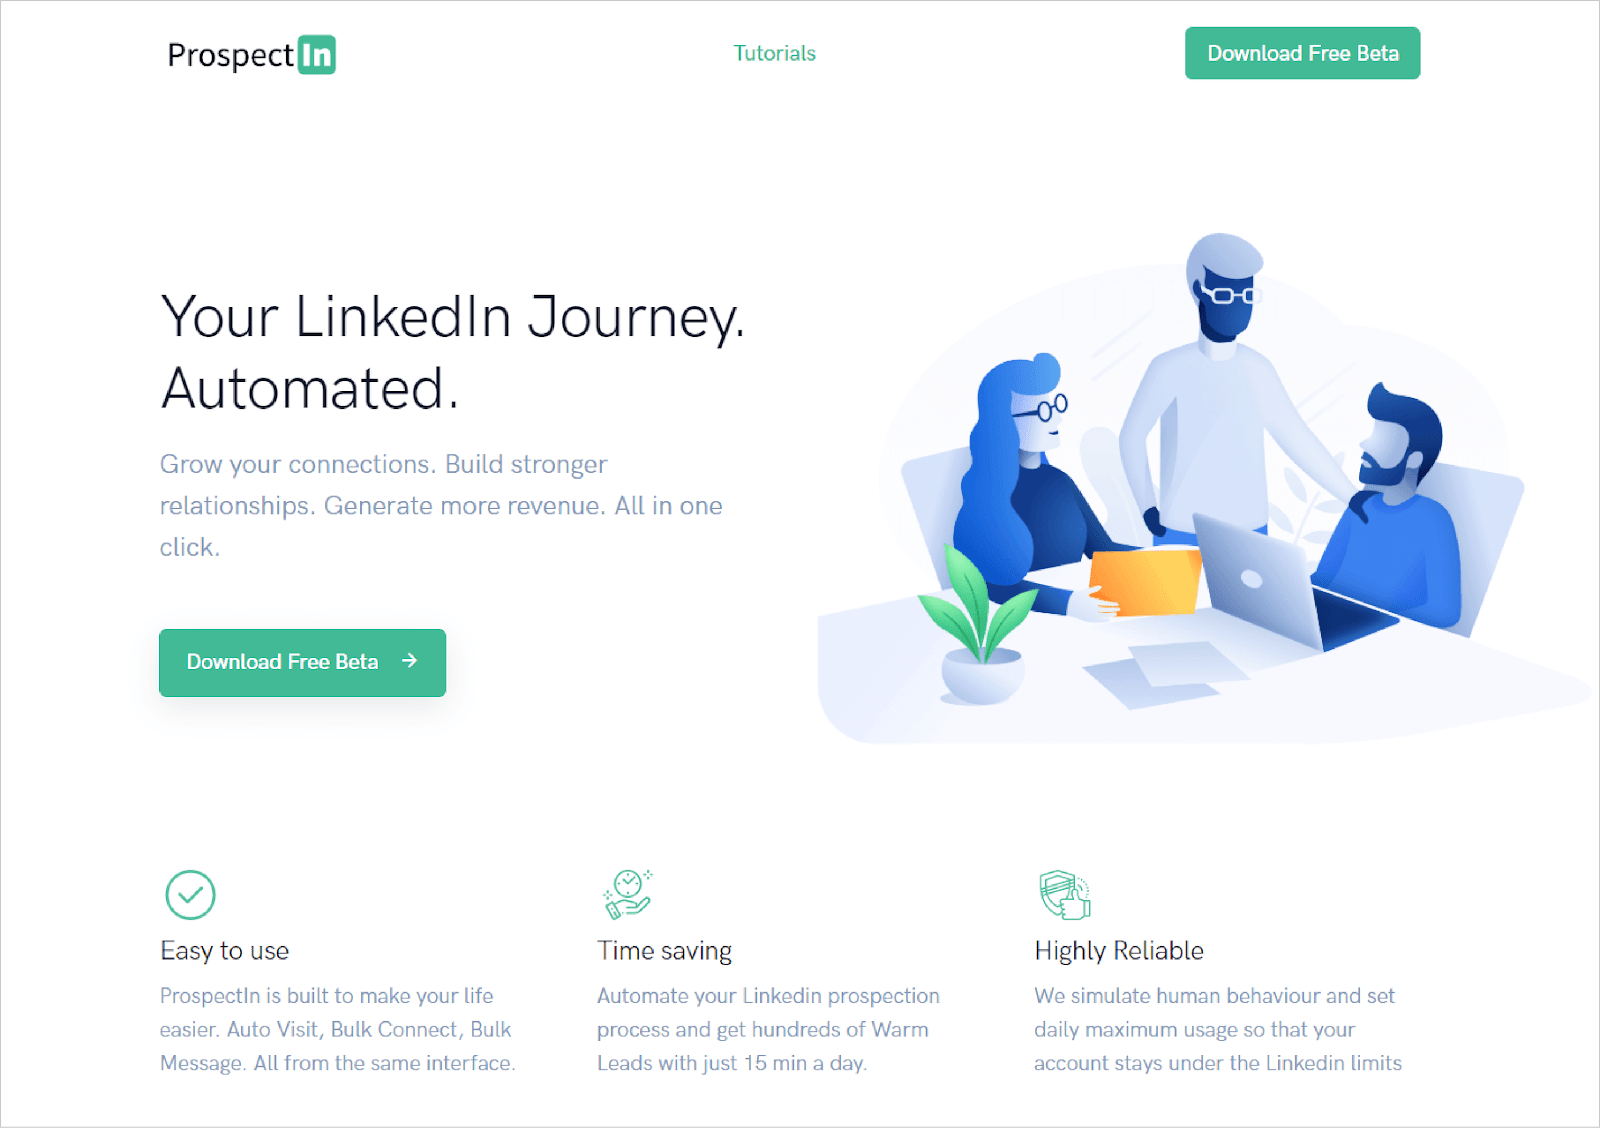 ProspectIn - a Chrome-Based Extension to Automate Your LinkedIn Journey